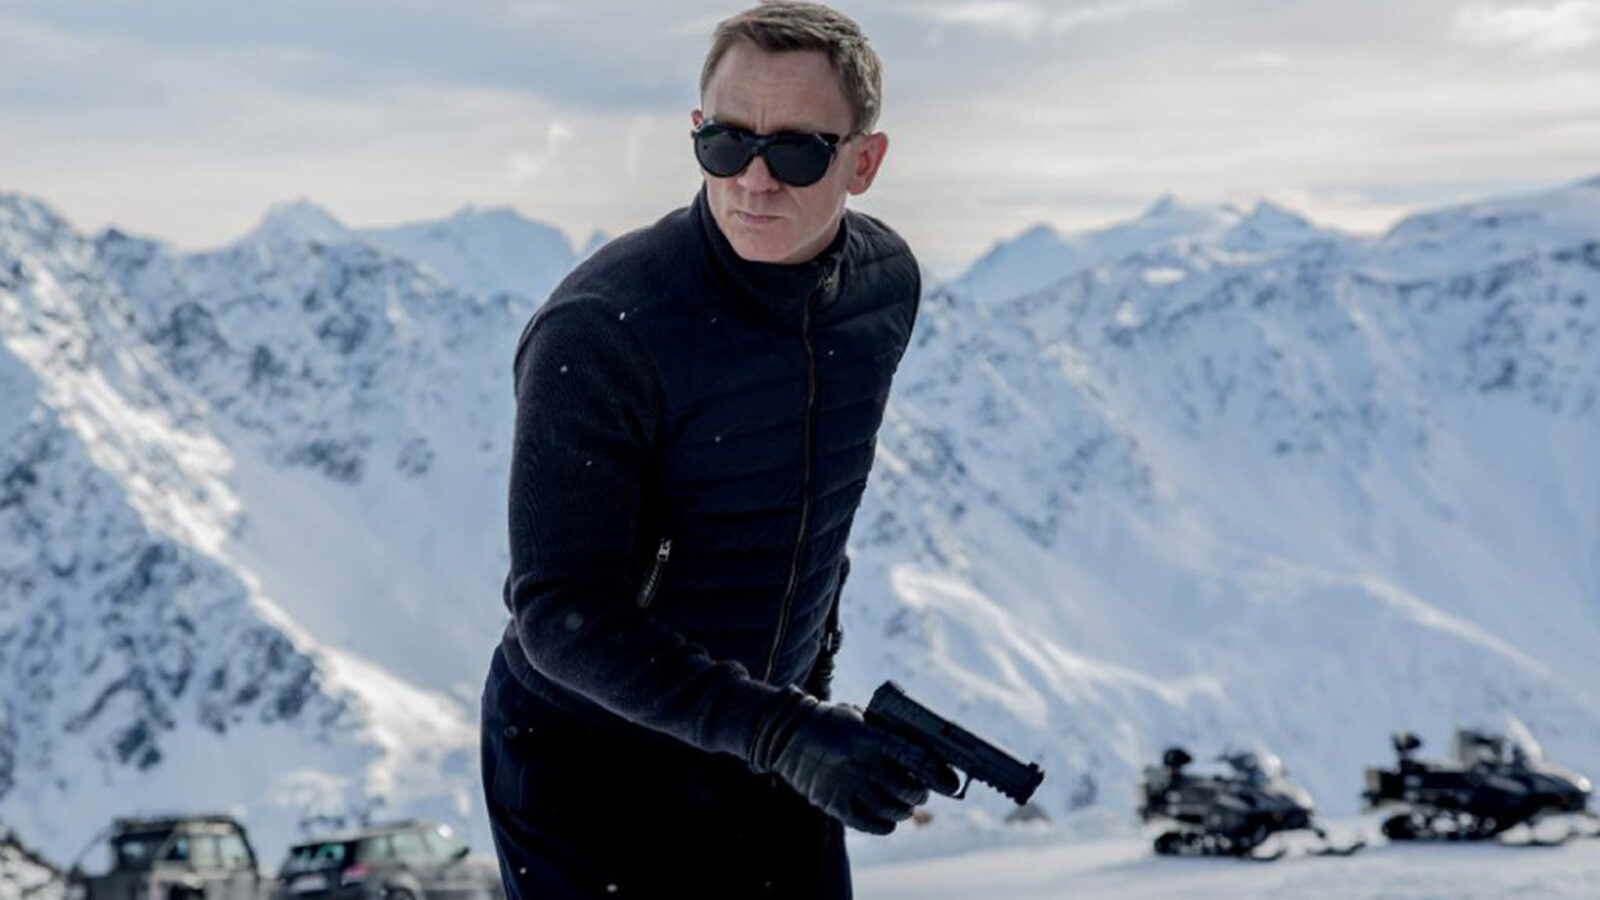 James Bond Spectre Daniel Craig Sunglasses